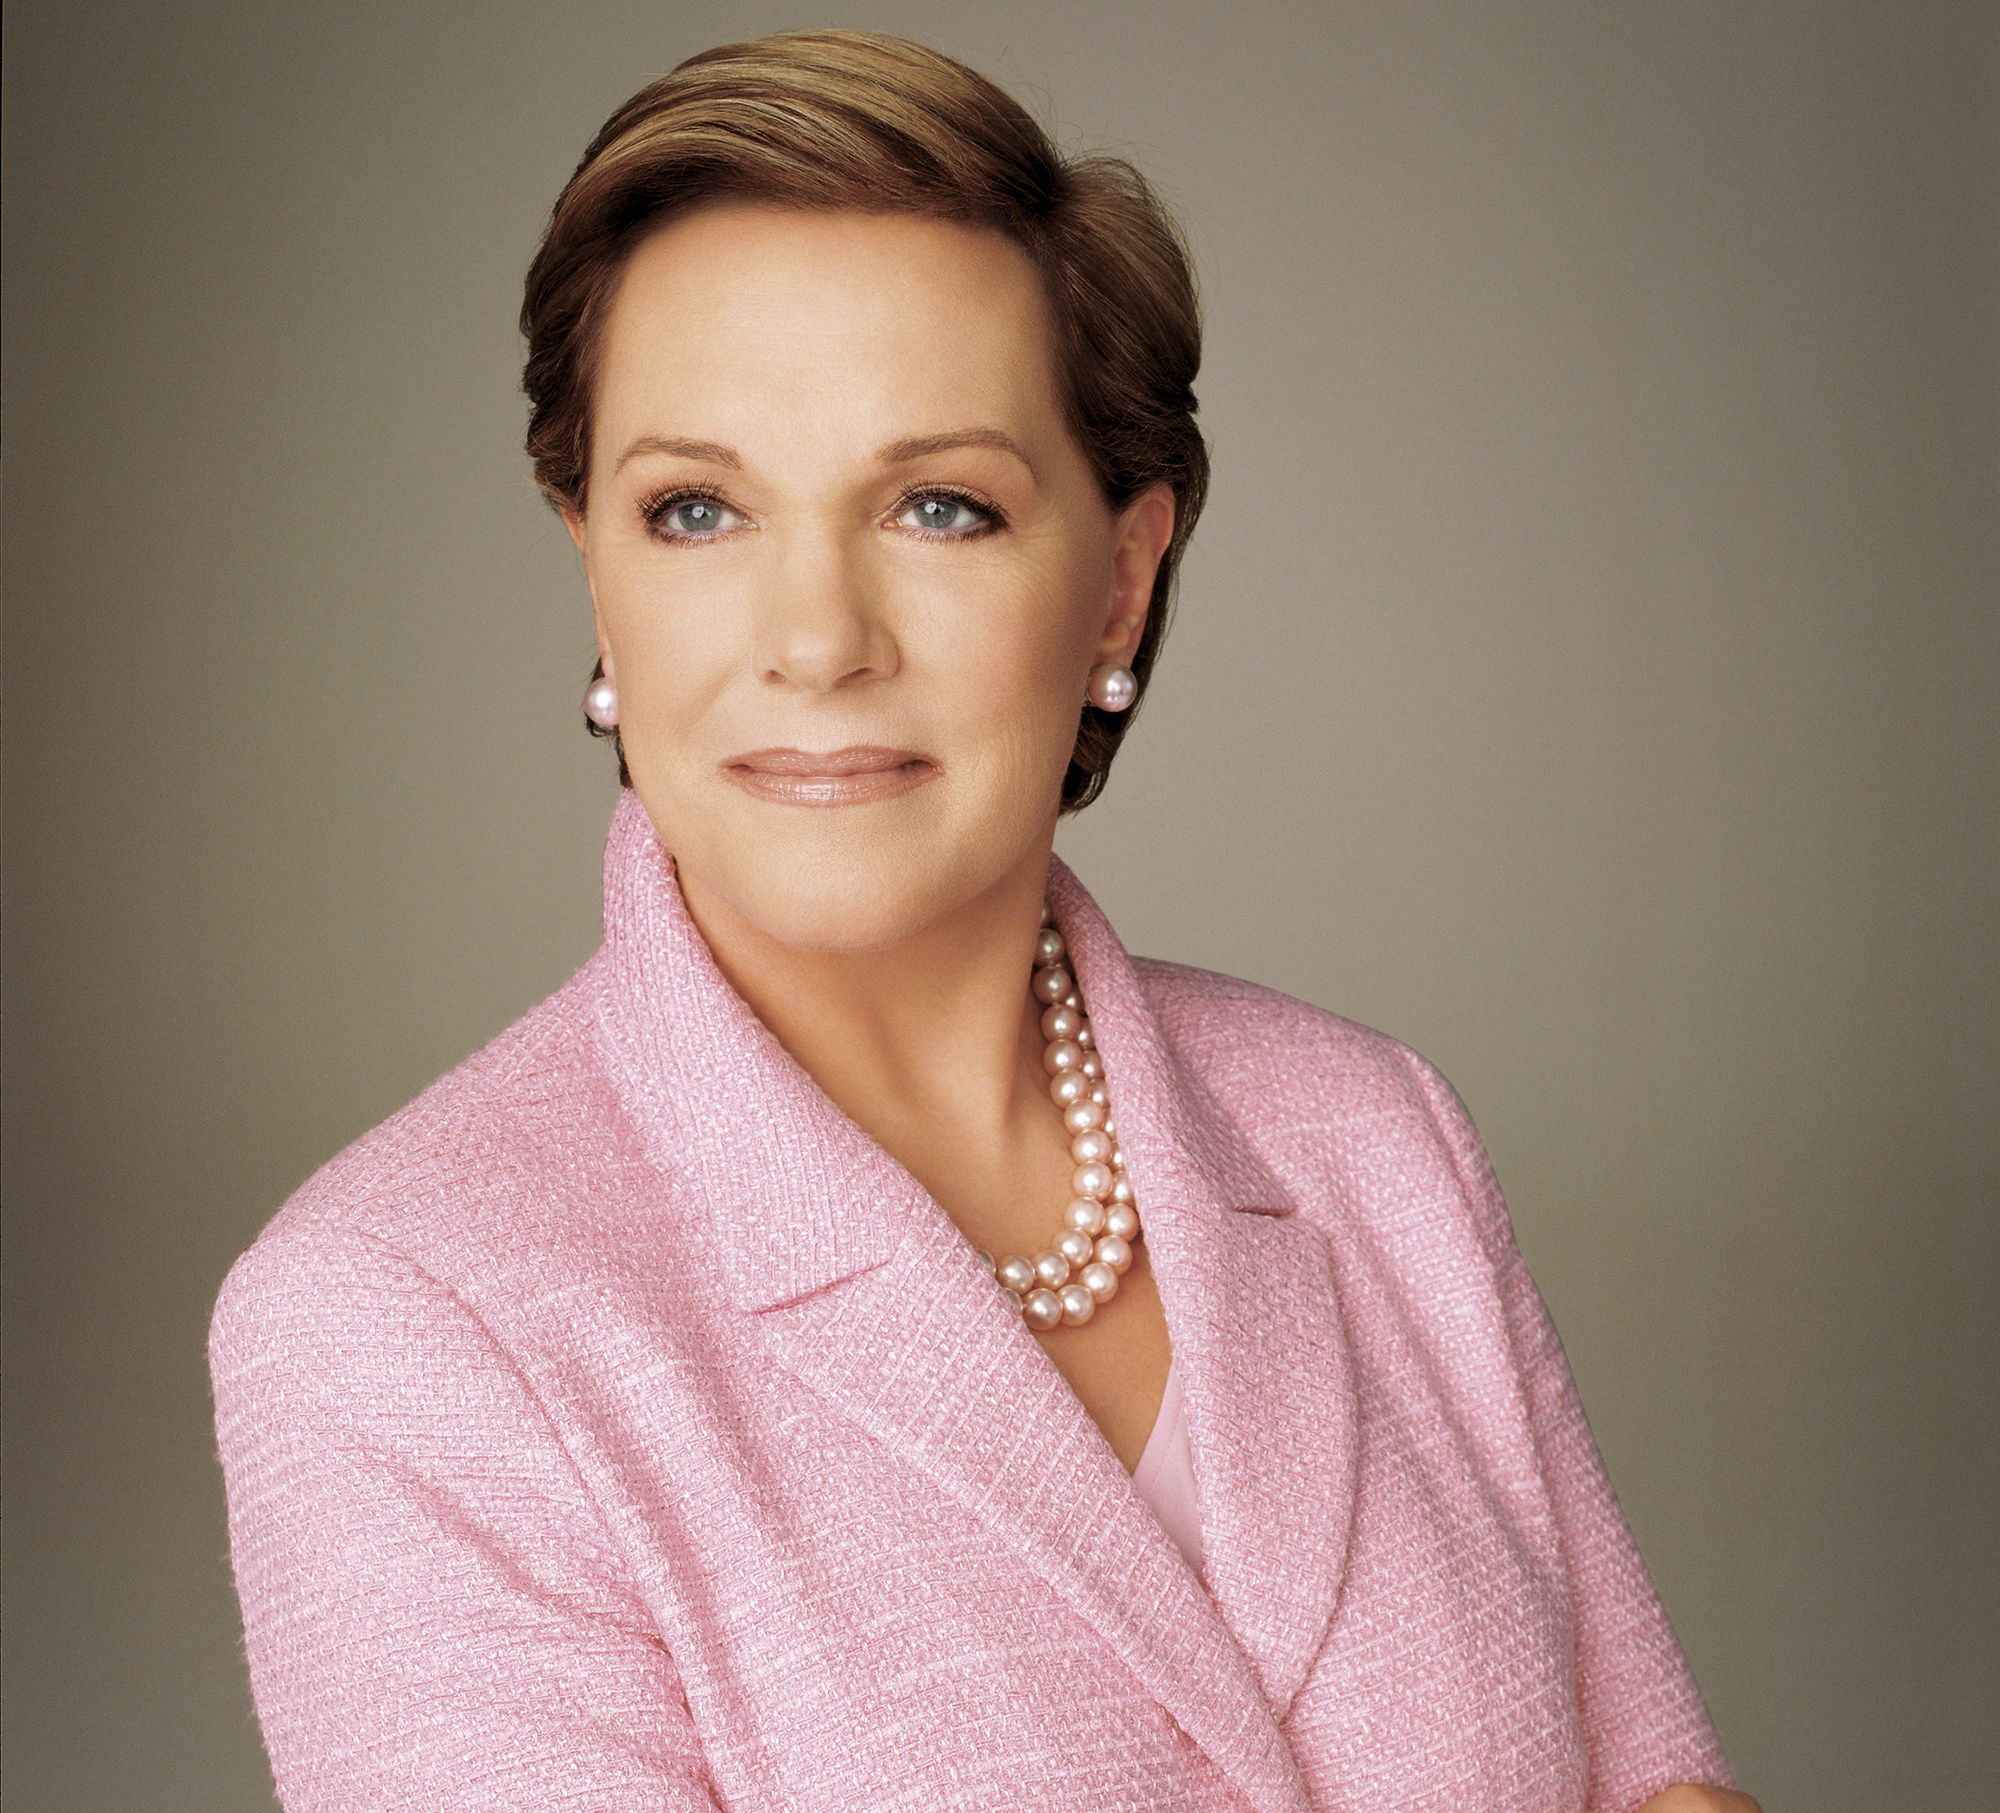 Julie Andrews wholesome stories about famous women